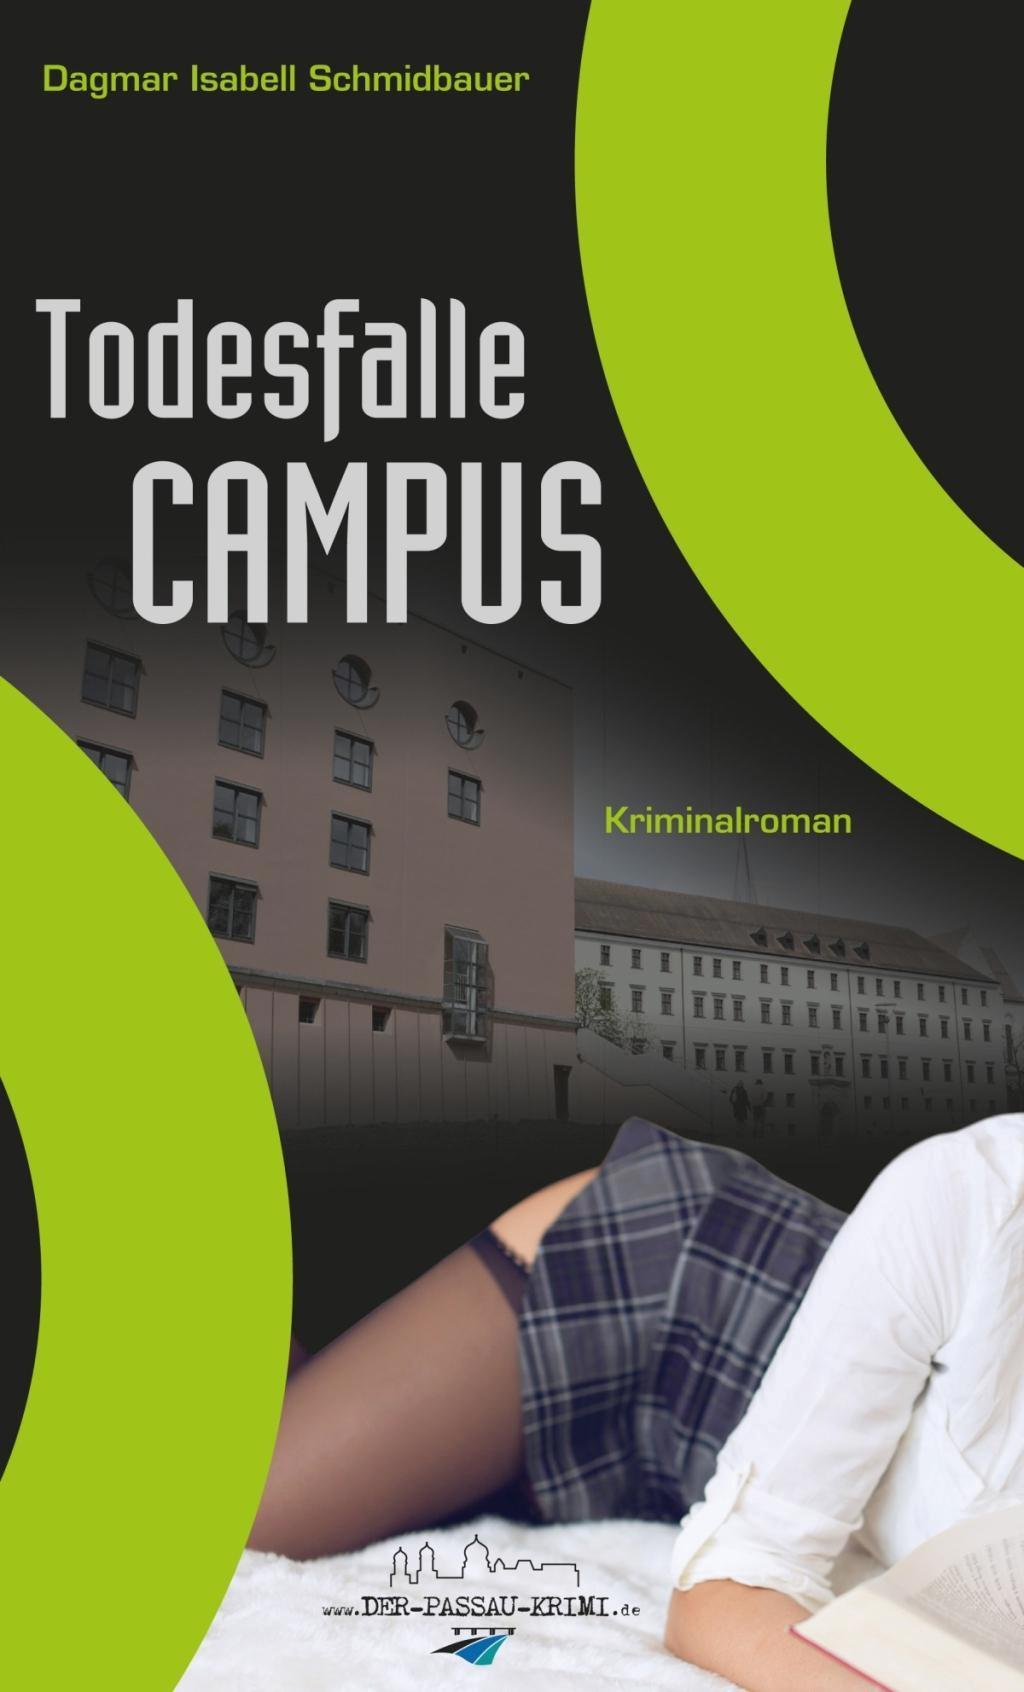 Todesfalle Campus